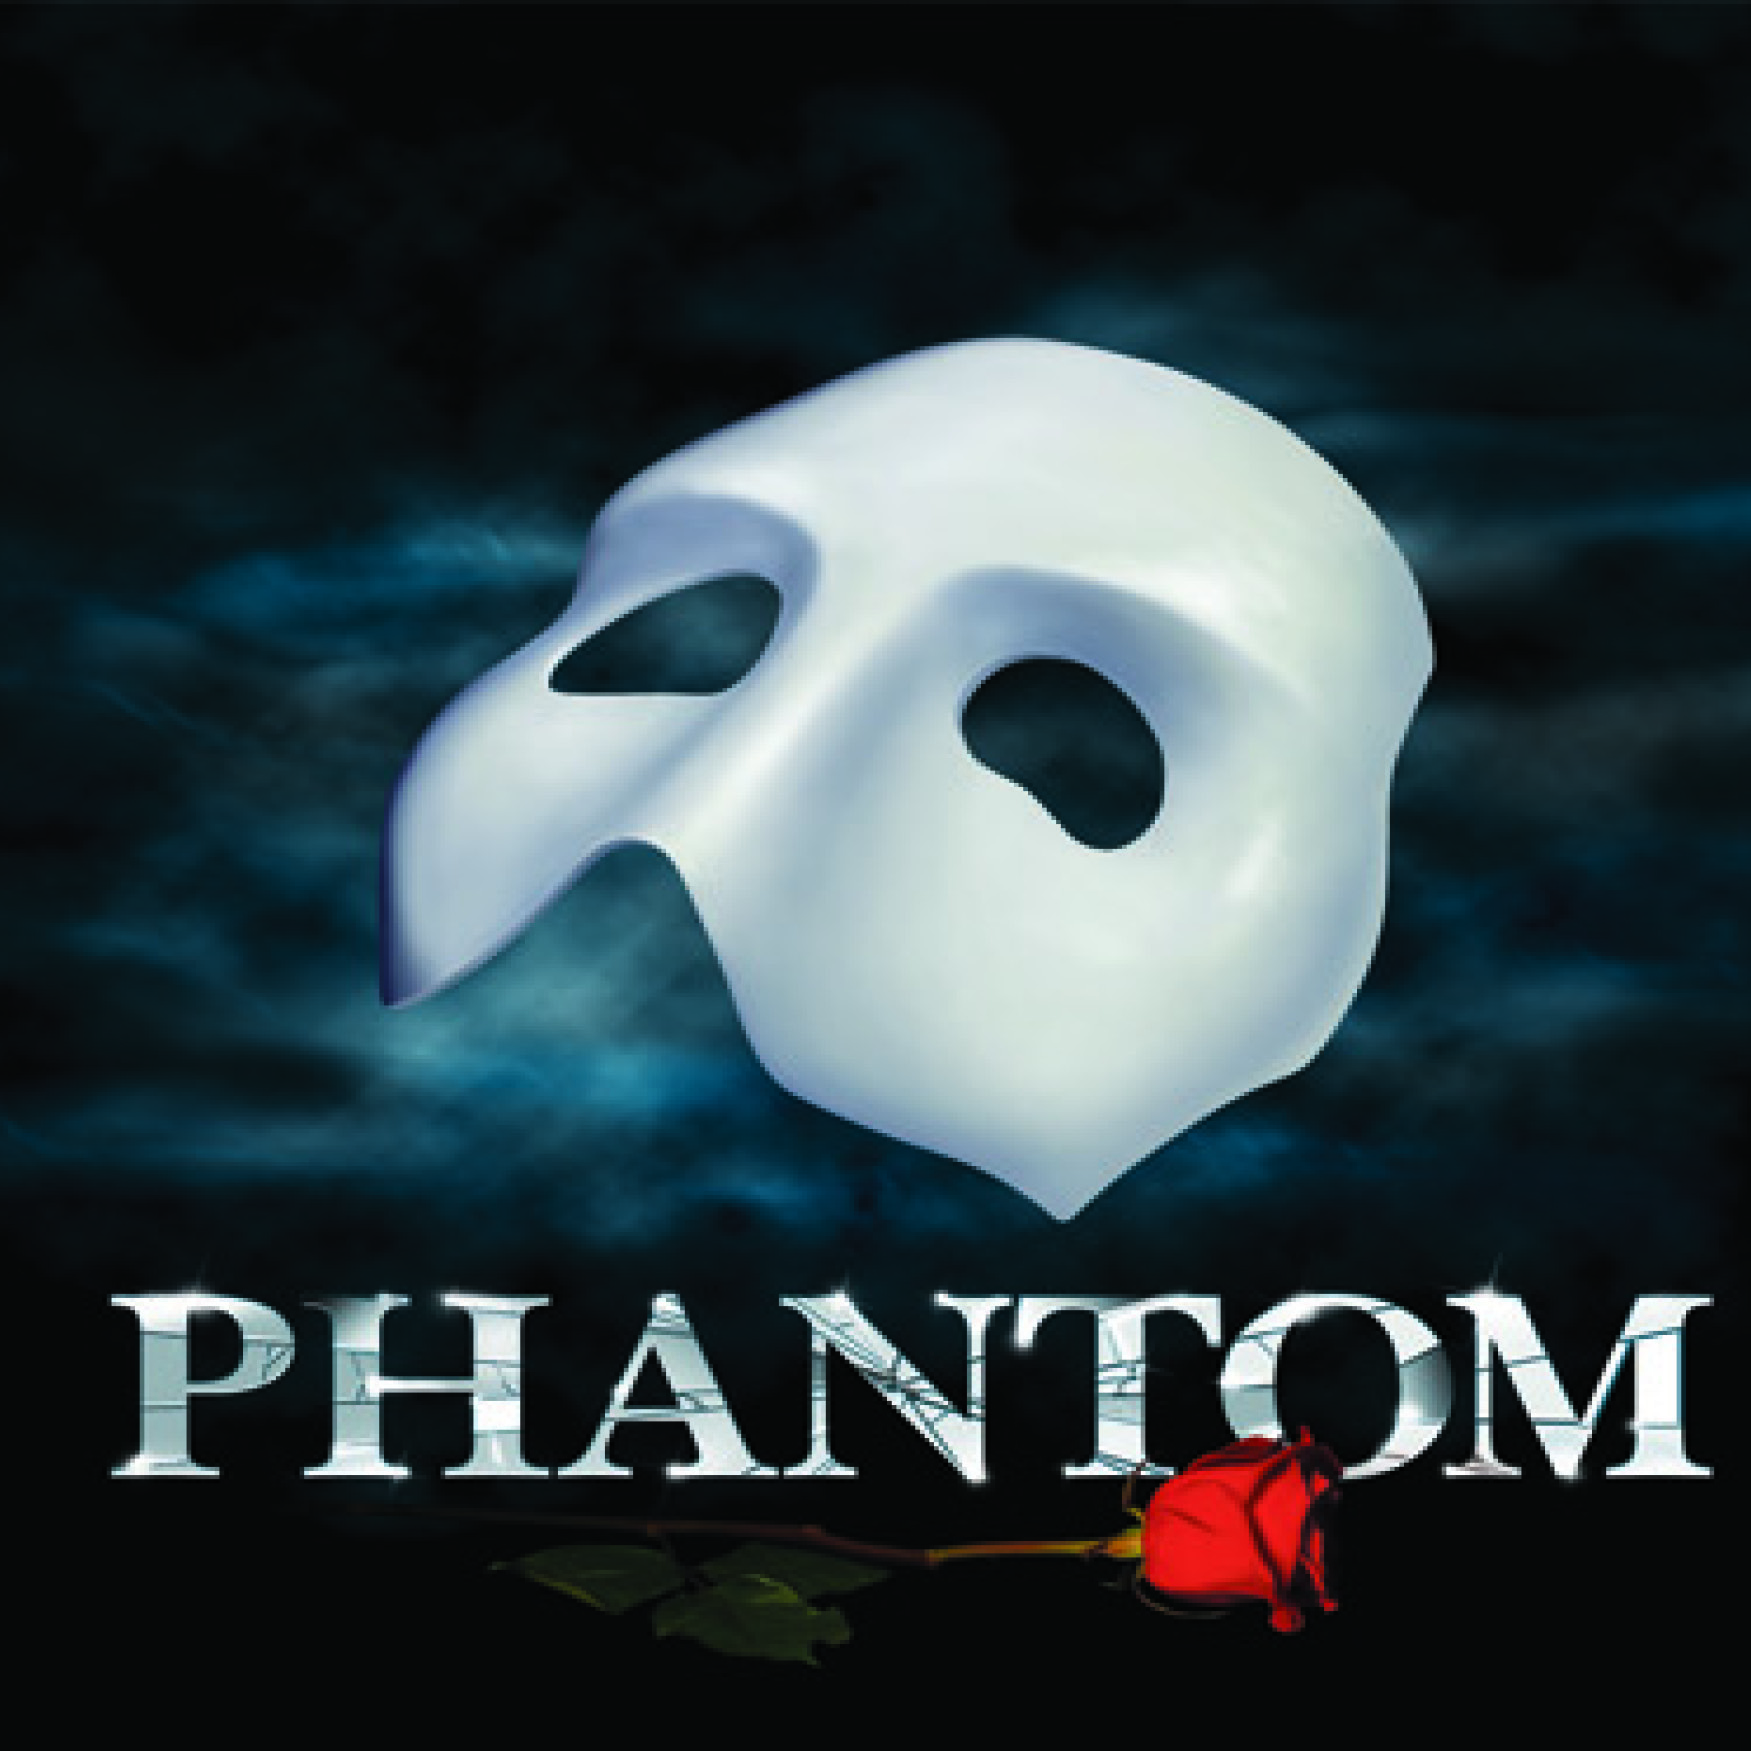 phantom-of-the-opera-poster.jpg